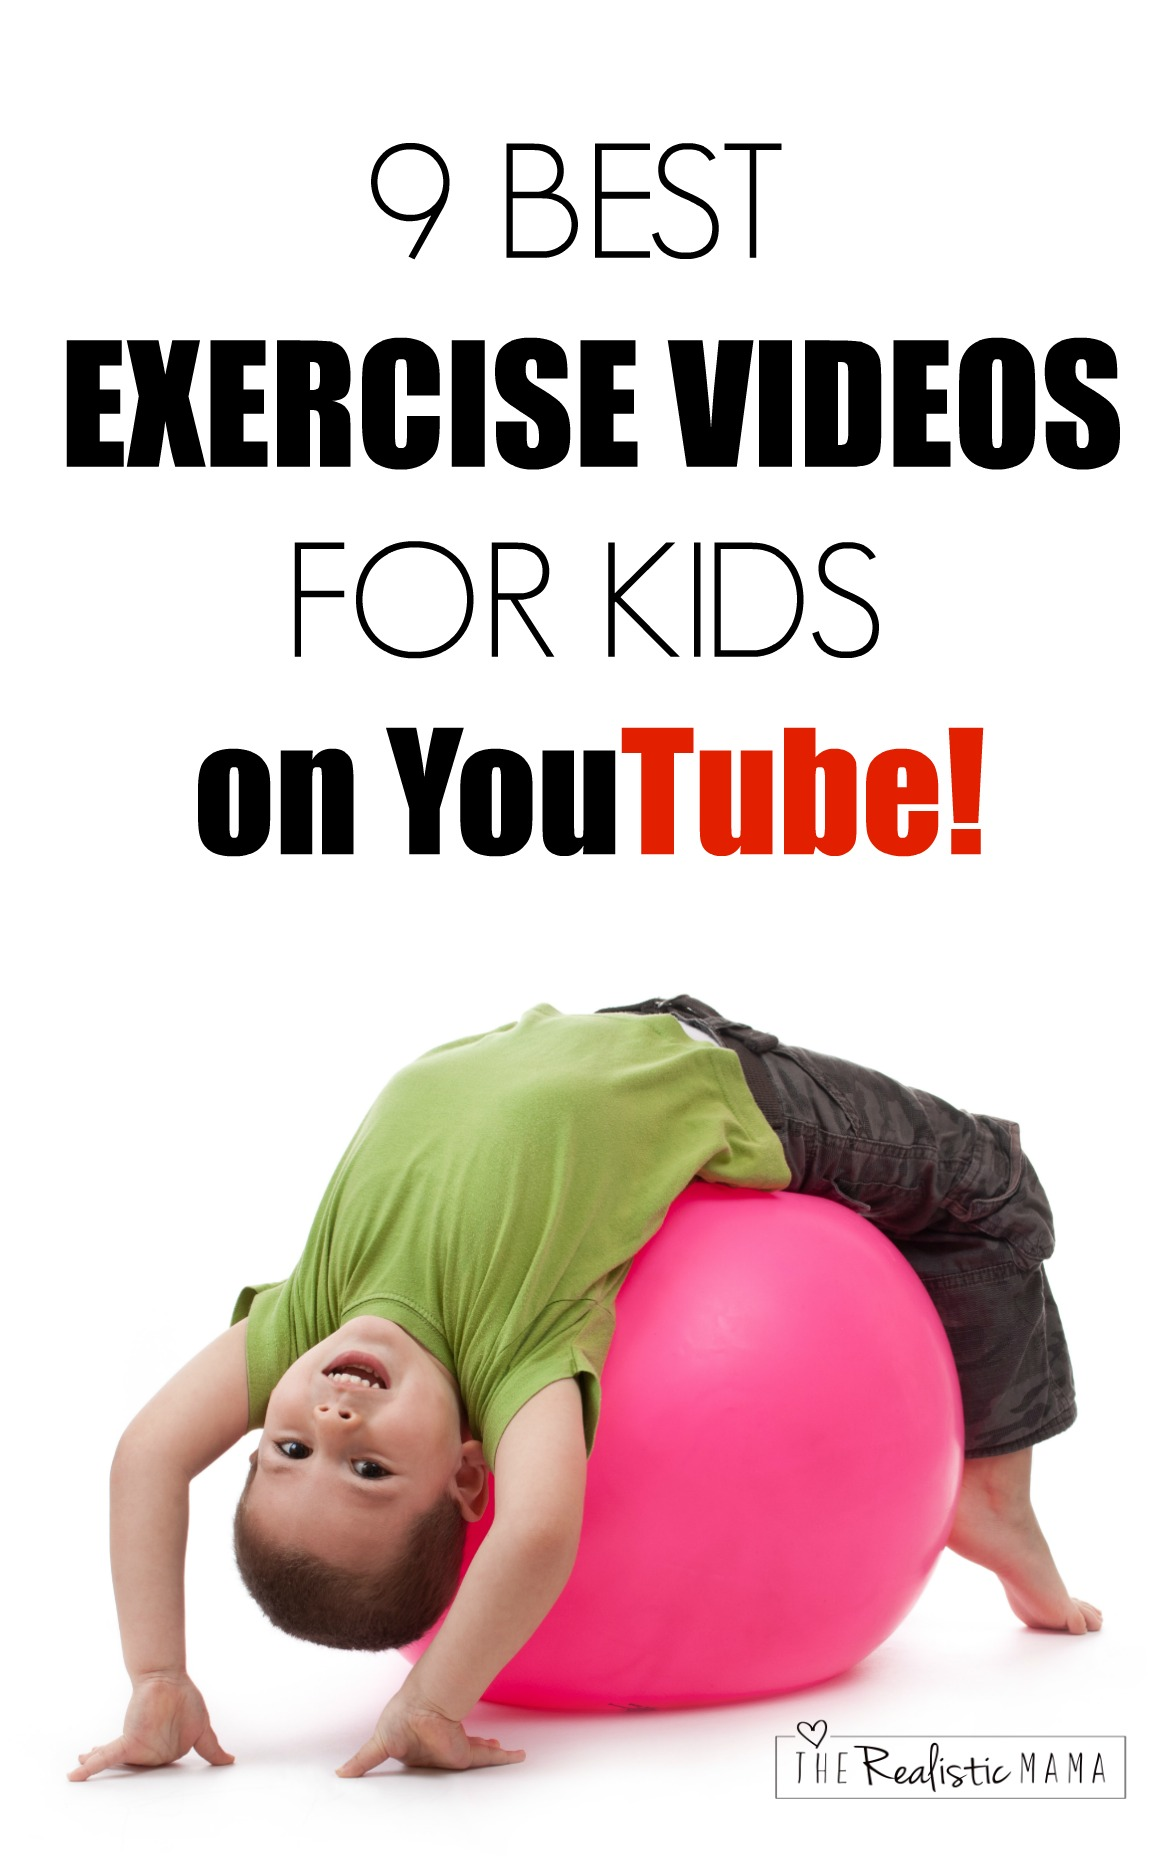 Exercise Videos for Kids on YouTube